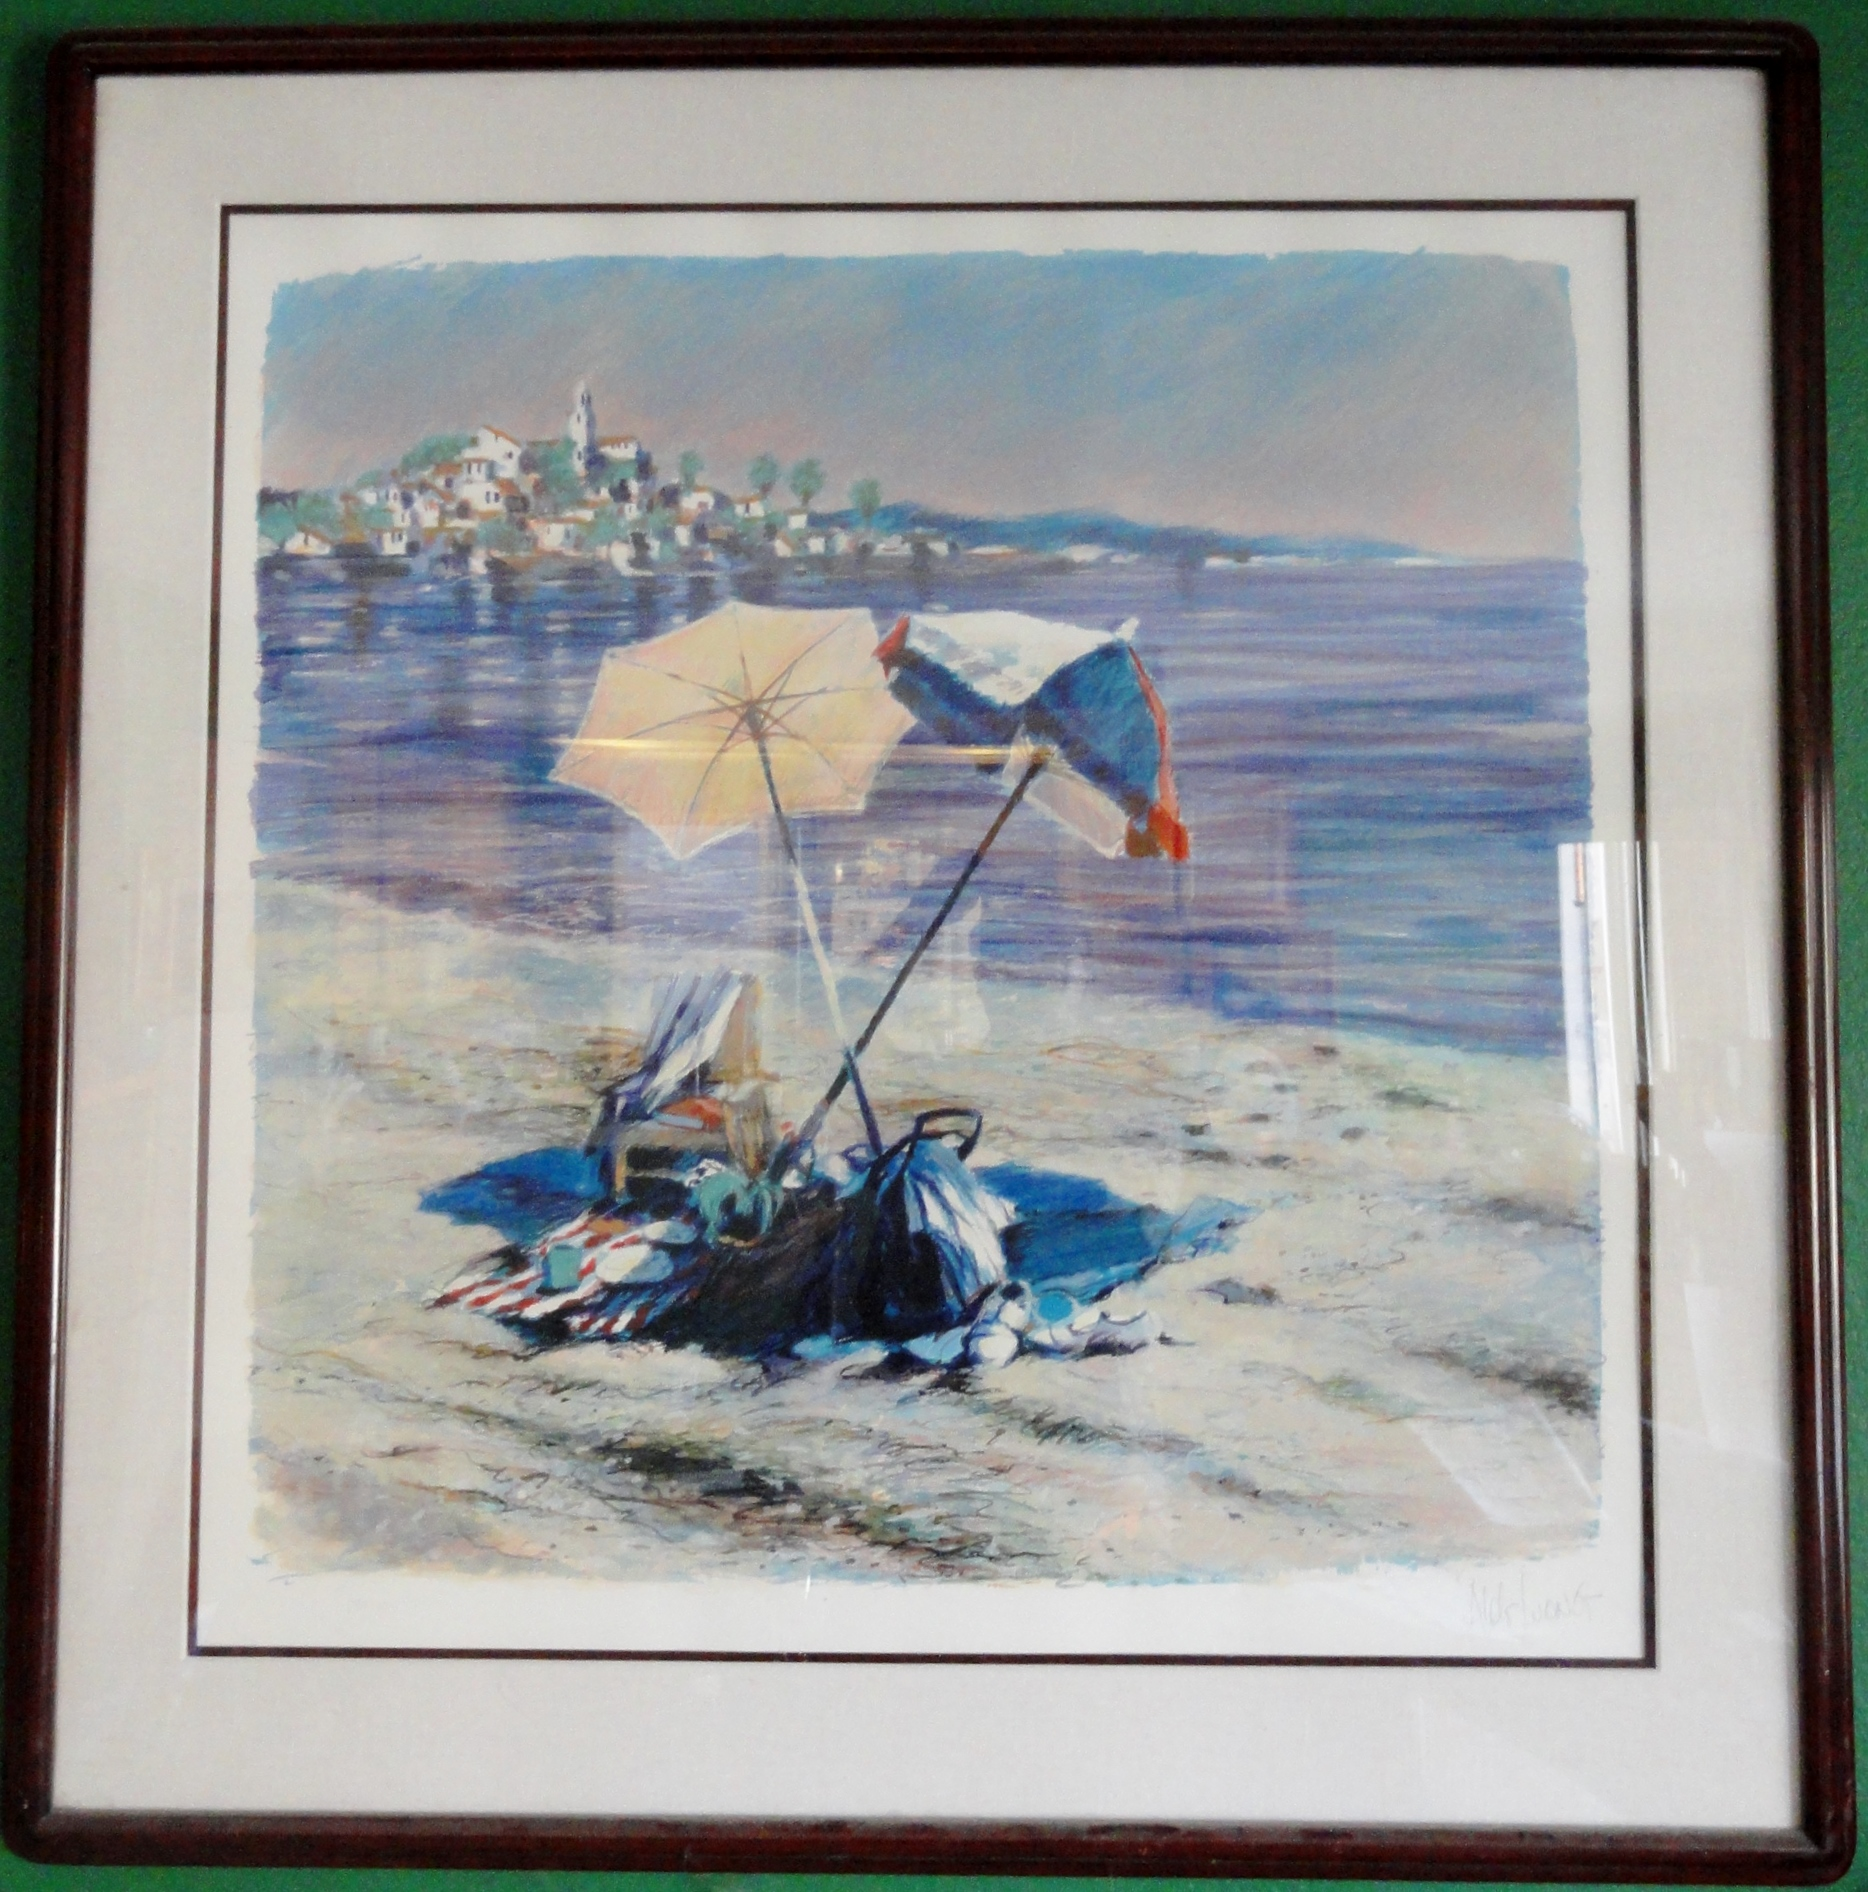 Blue Coast by Aldo Luongo Signed and numbered limited edition serigraph